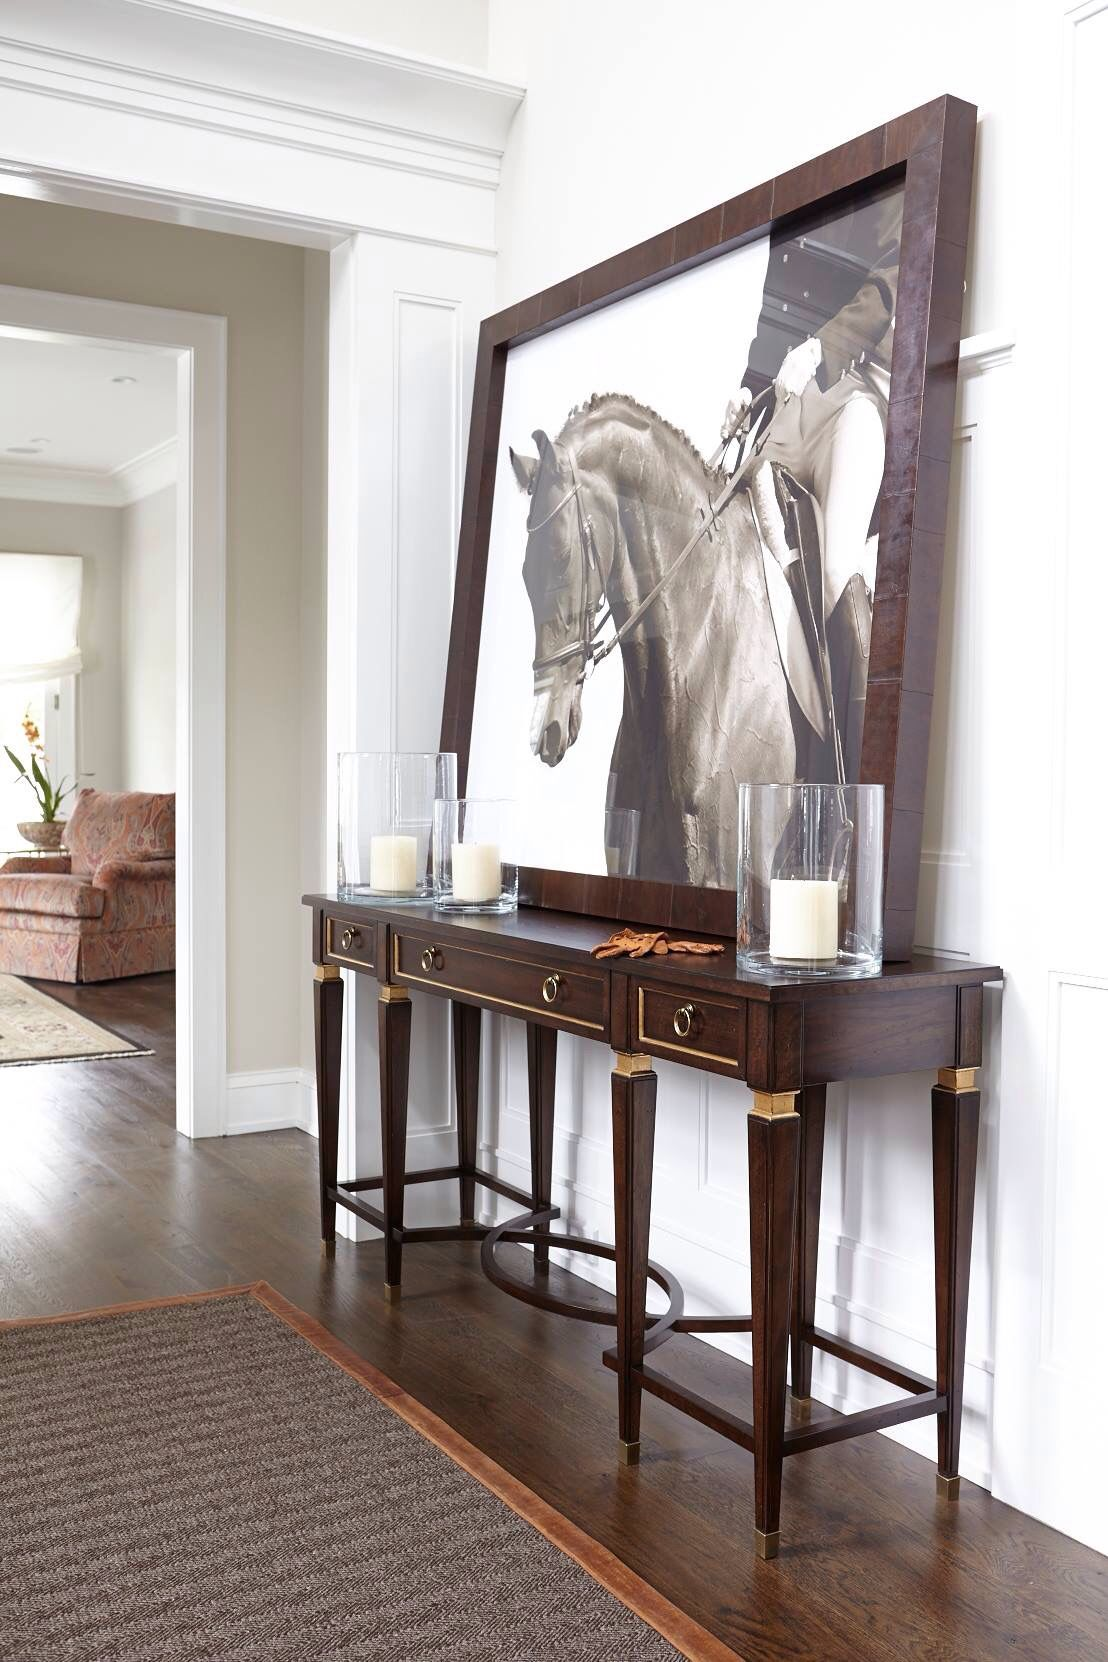 The equestrian life has a style all of its own.... one that I have come to  love. Check out these drool worthy equestrian style spaces. e32ace4cd90